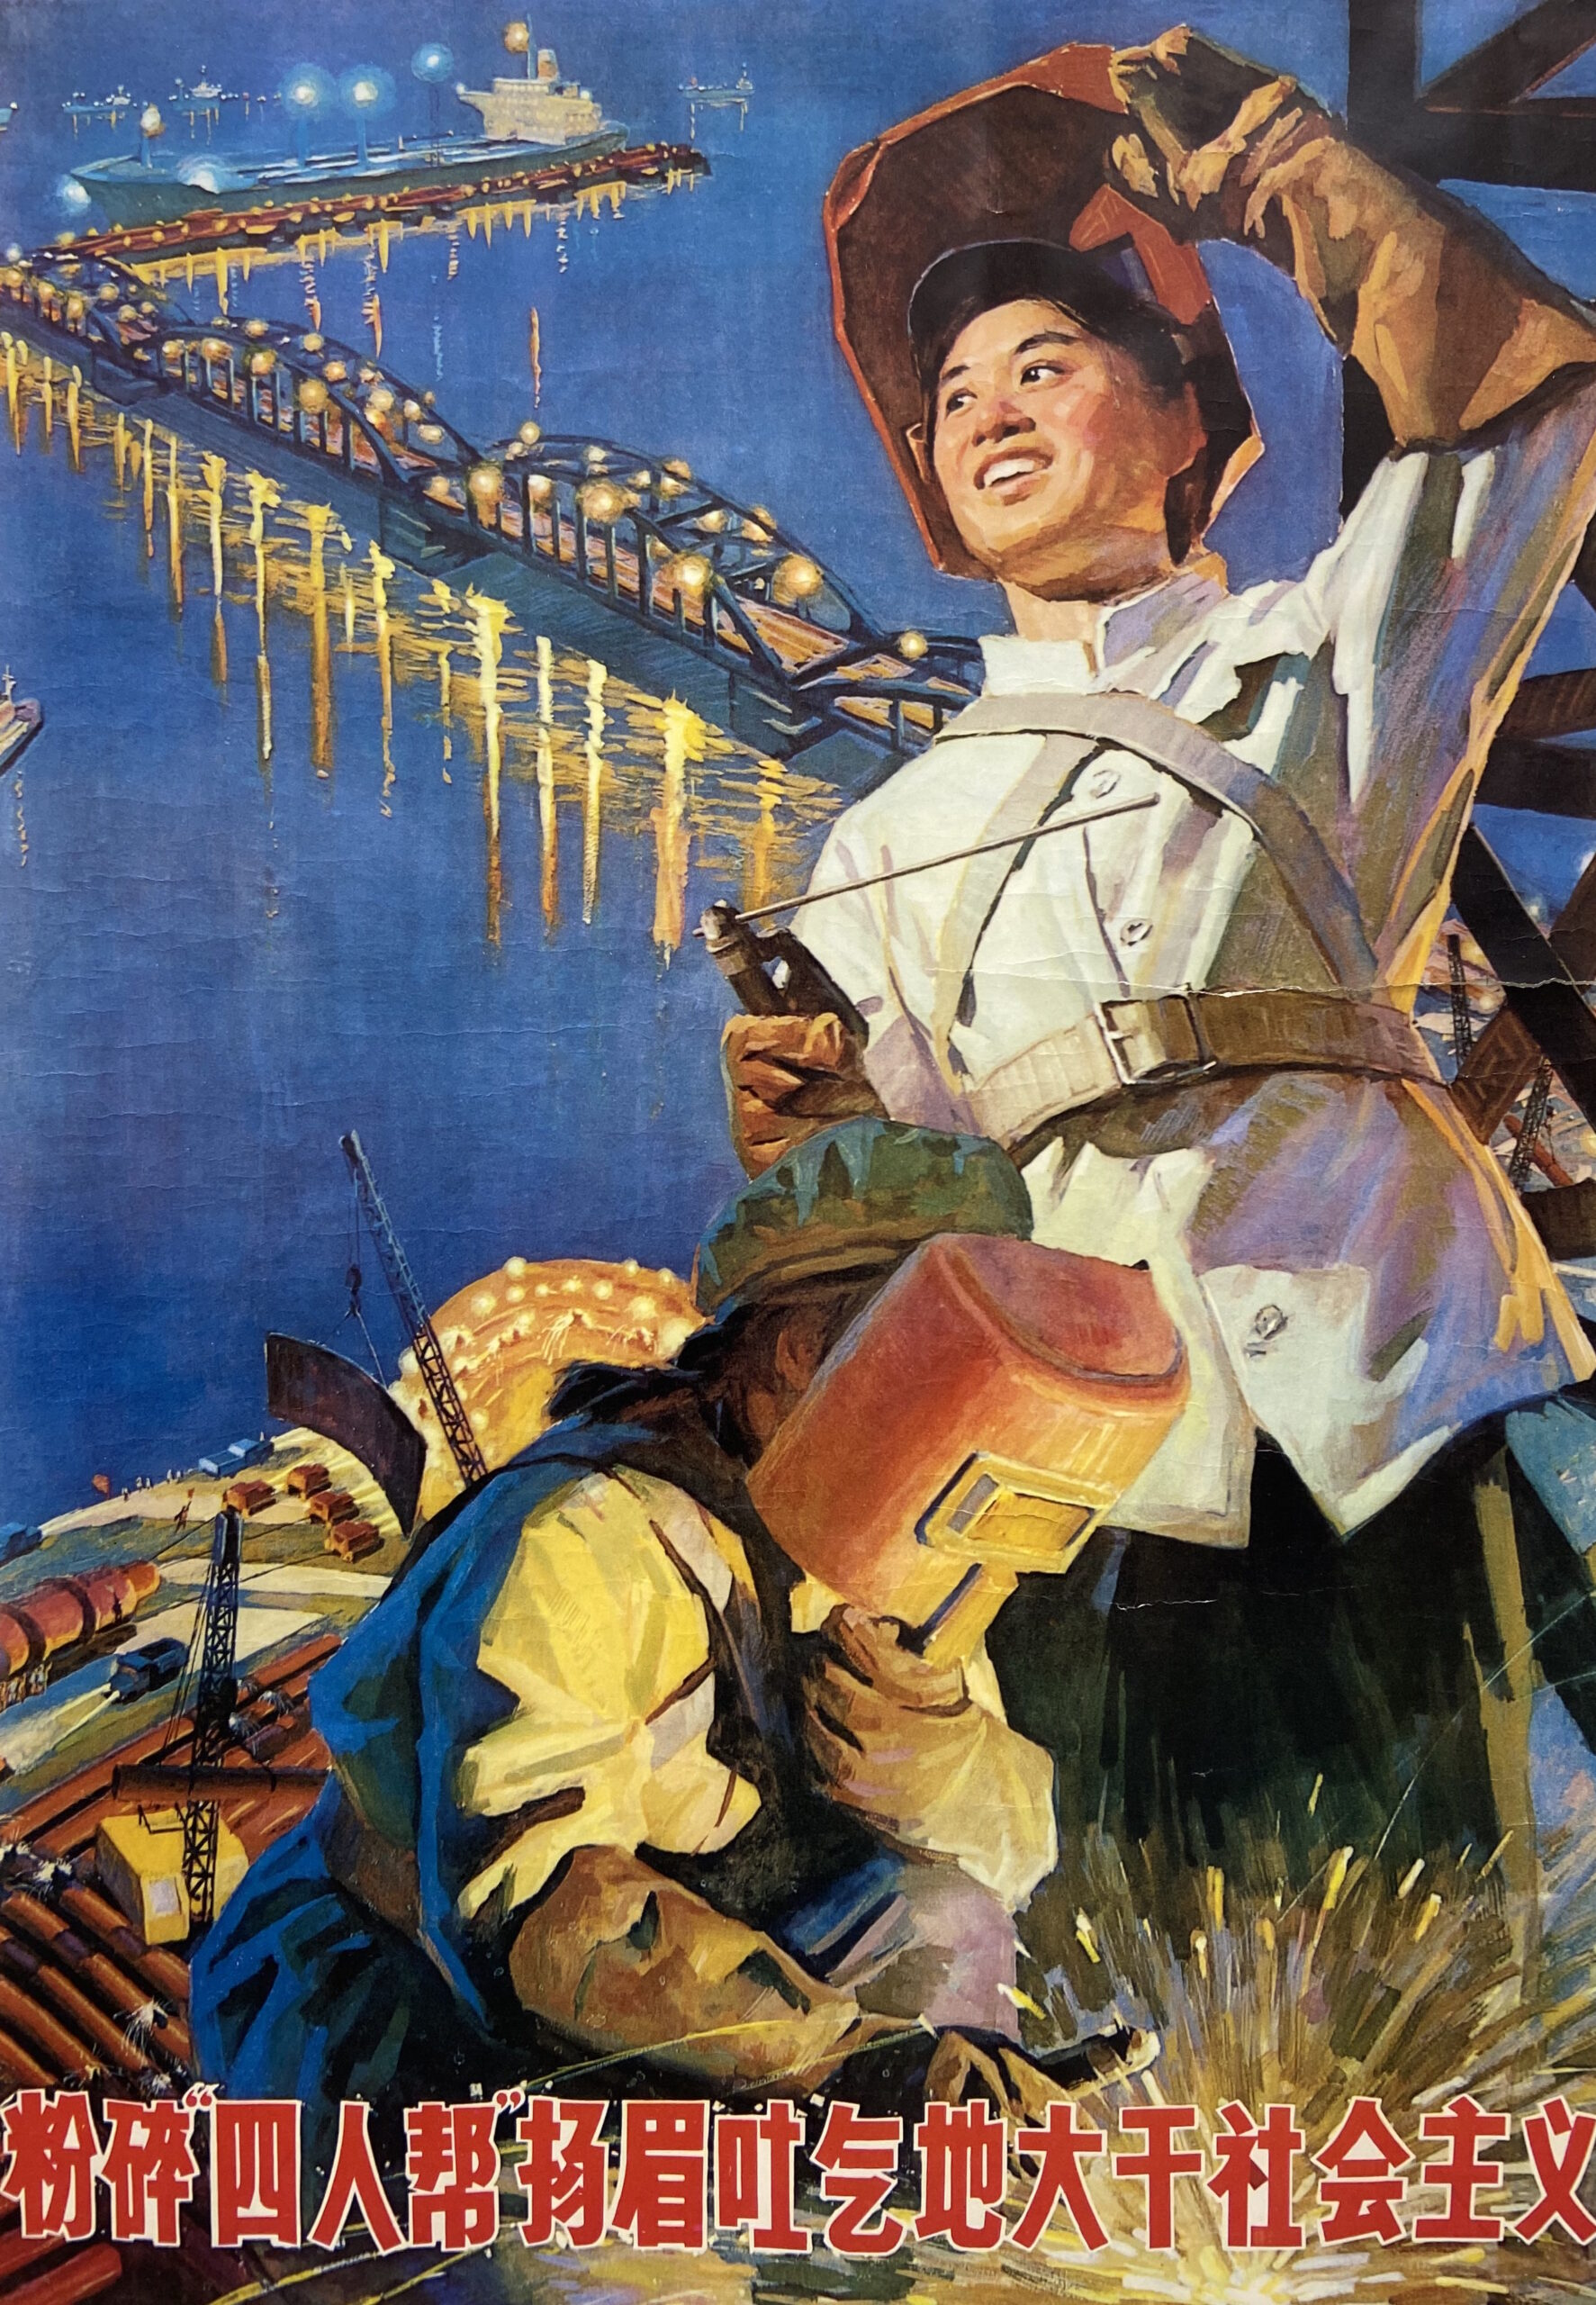 Prints that Erase: Ideals of Femininity in Chinese Propaganda Posters